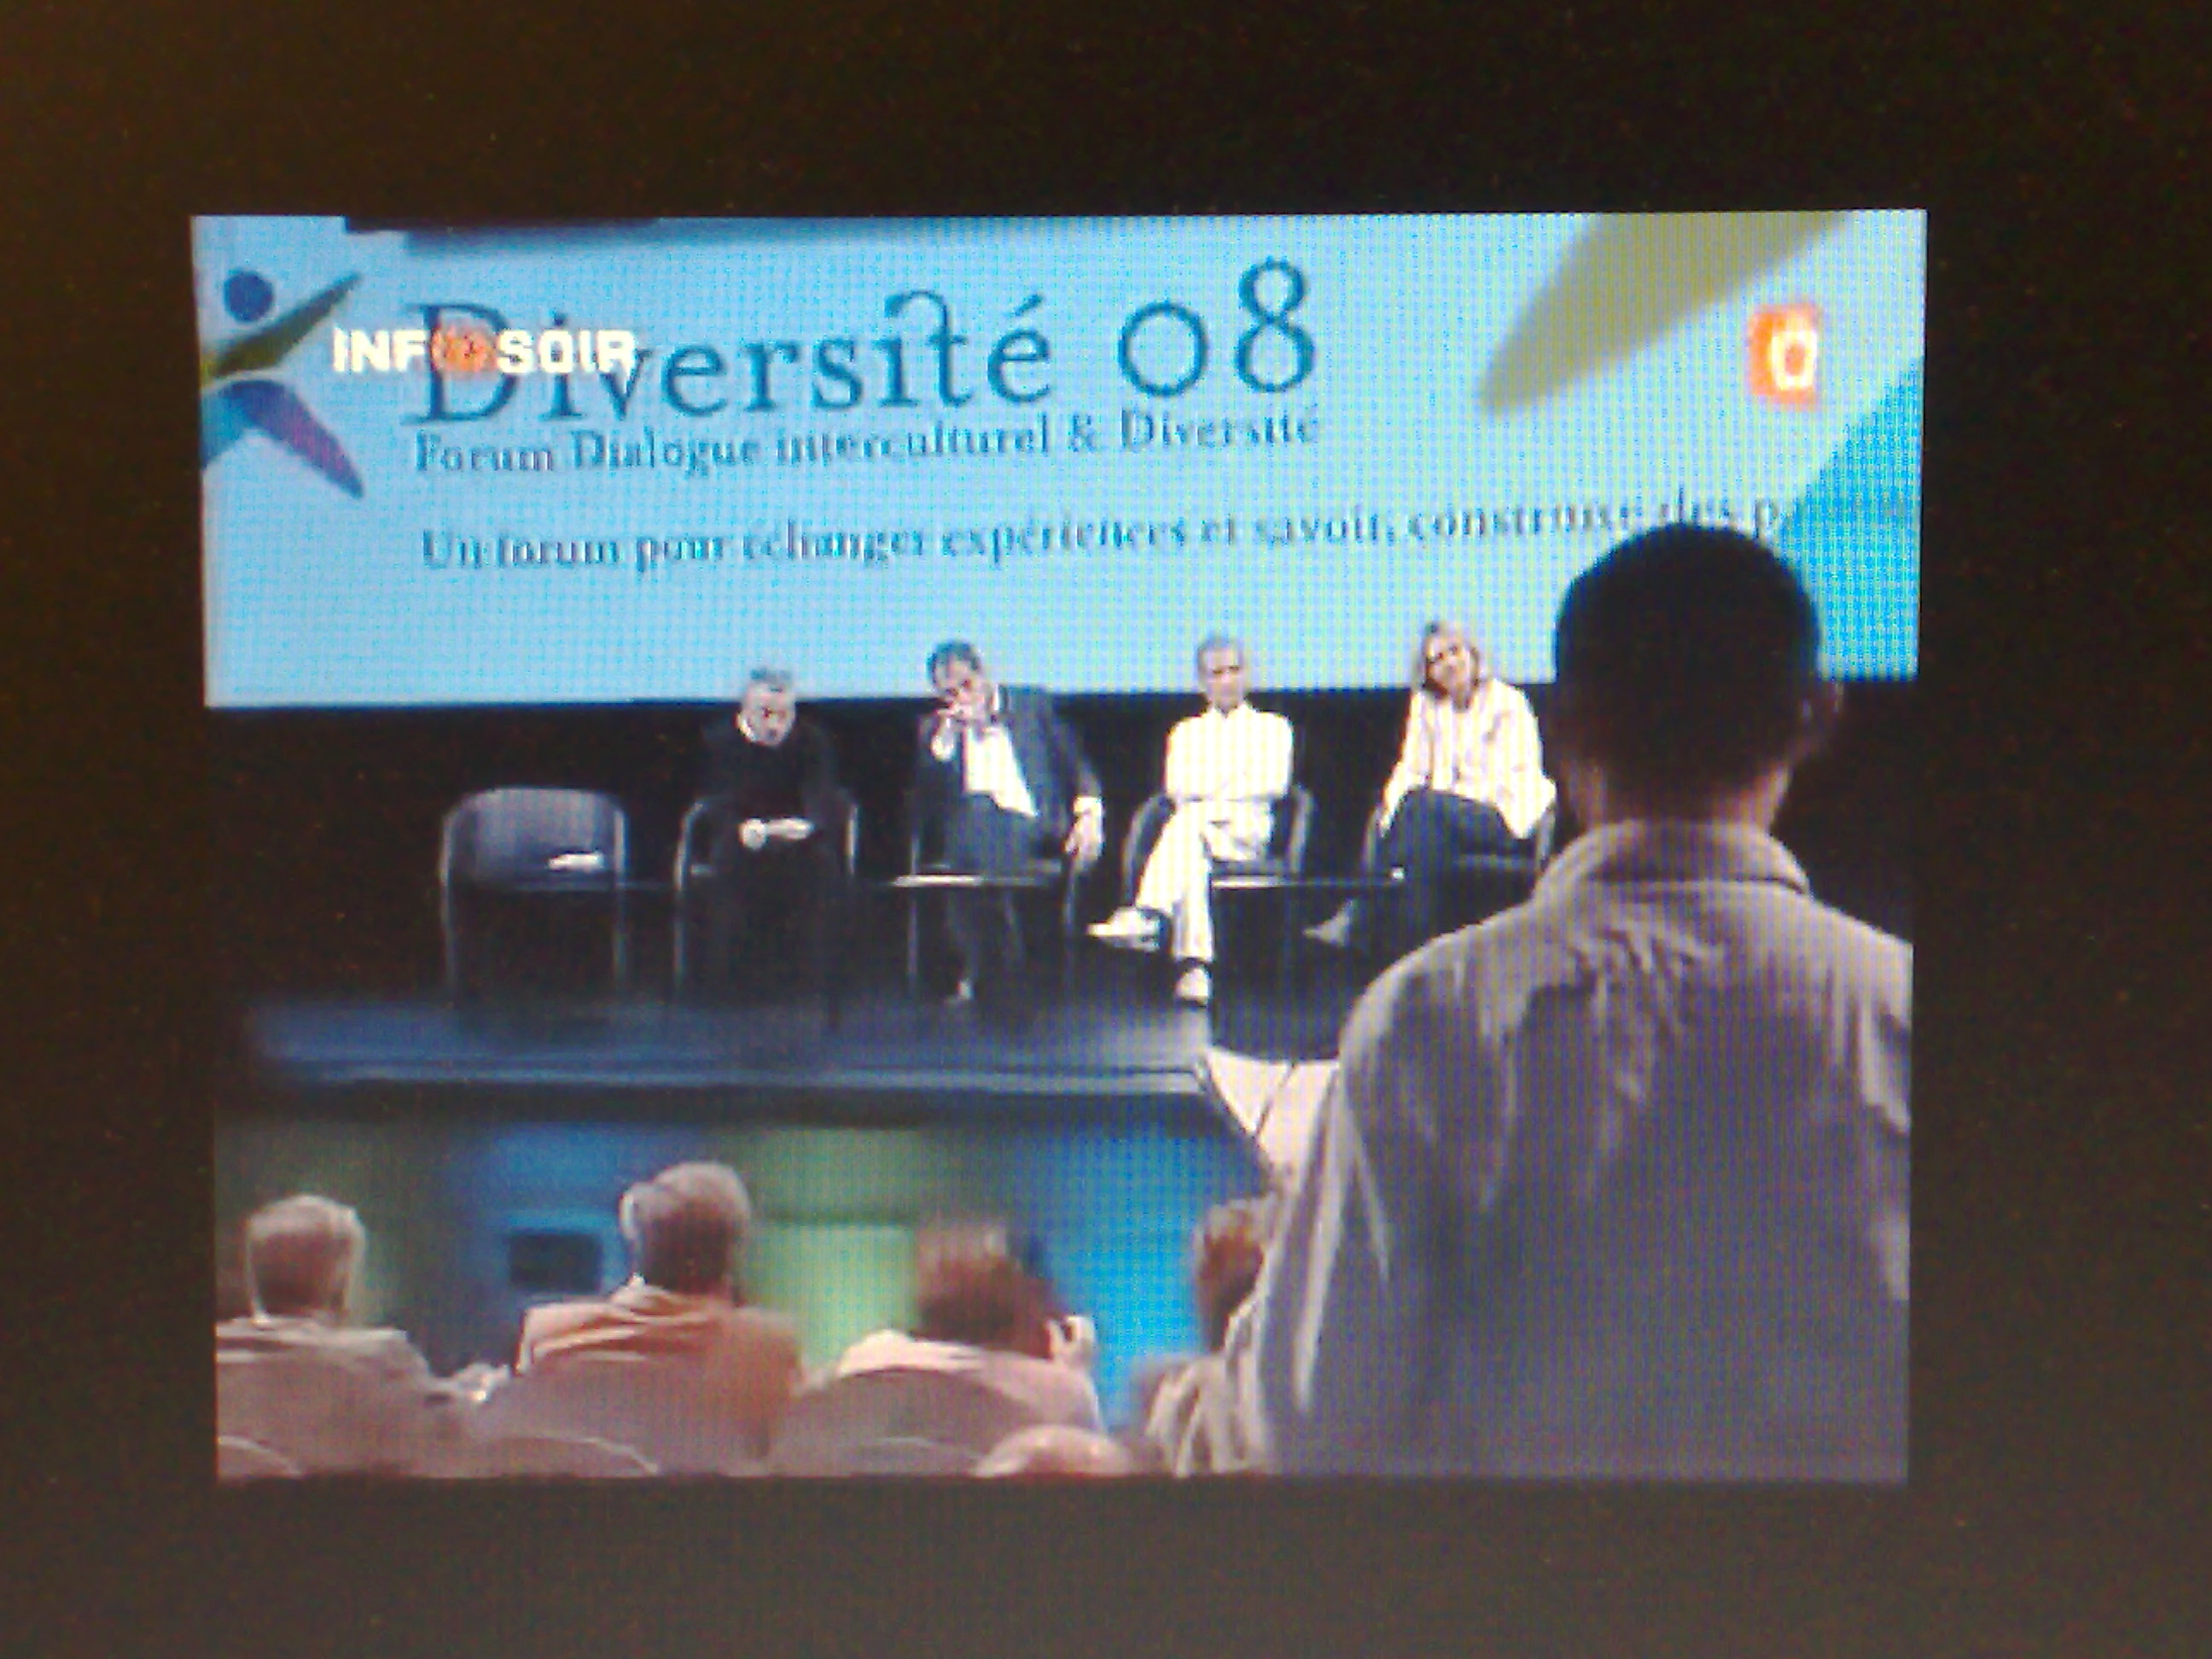 mon-intervention-forum-diversite-08.jpg